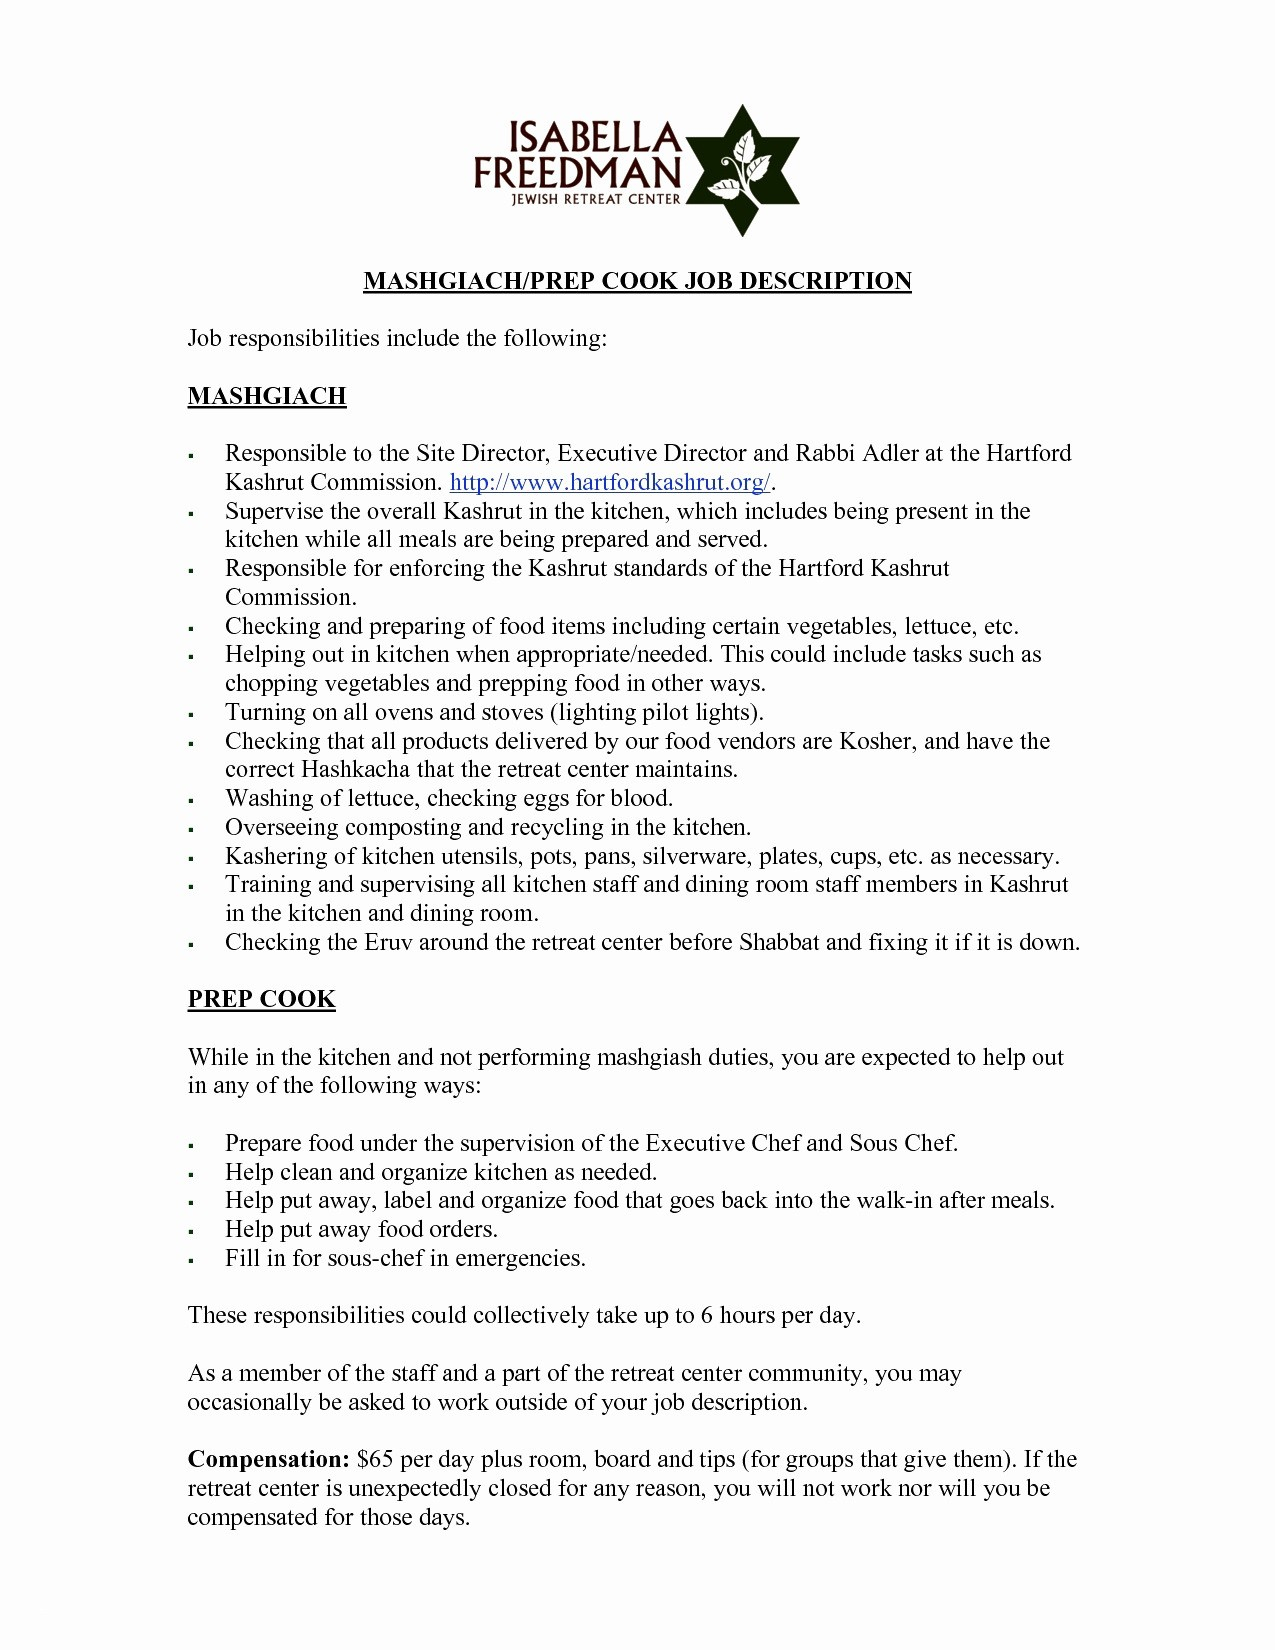 Corporate Resolution Letter Template - Members Resolution Template Best Resume Doc Template Luxury